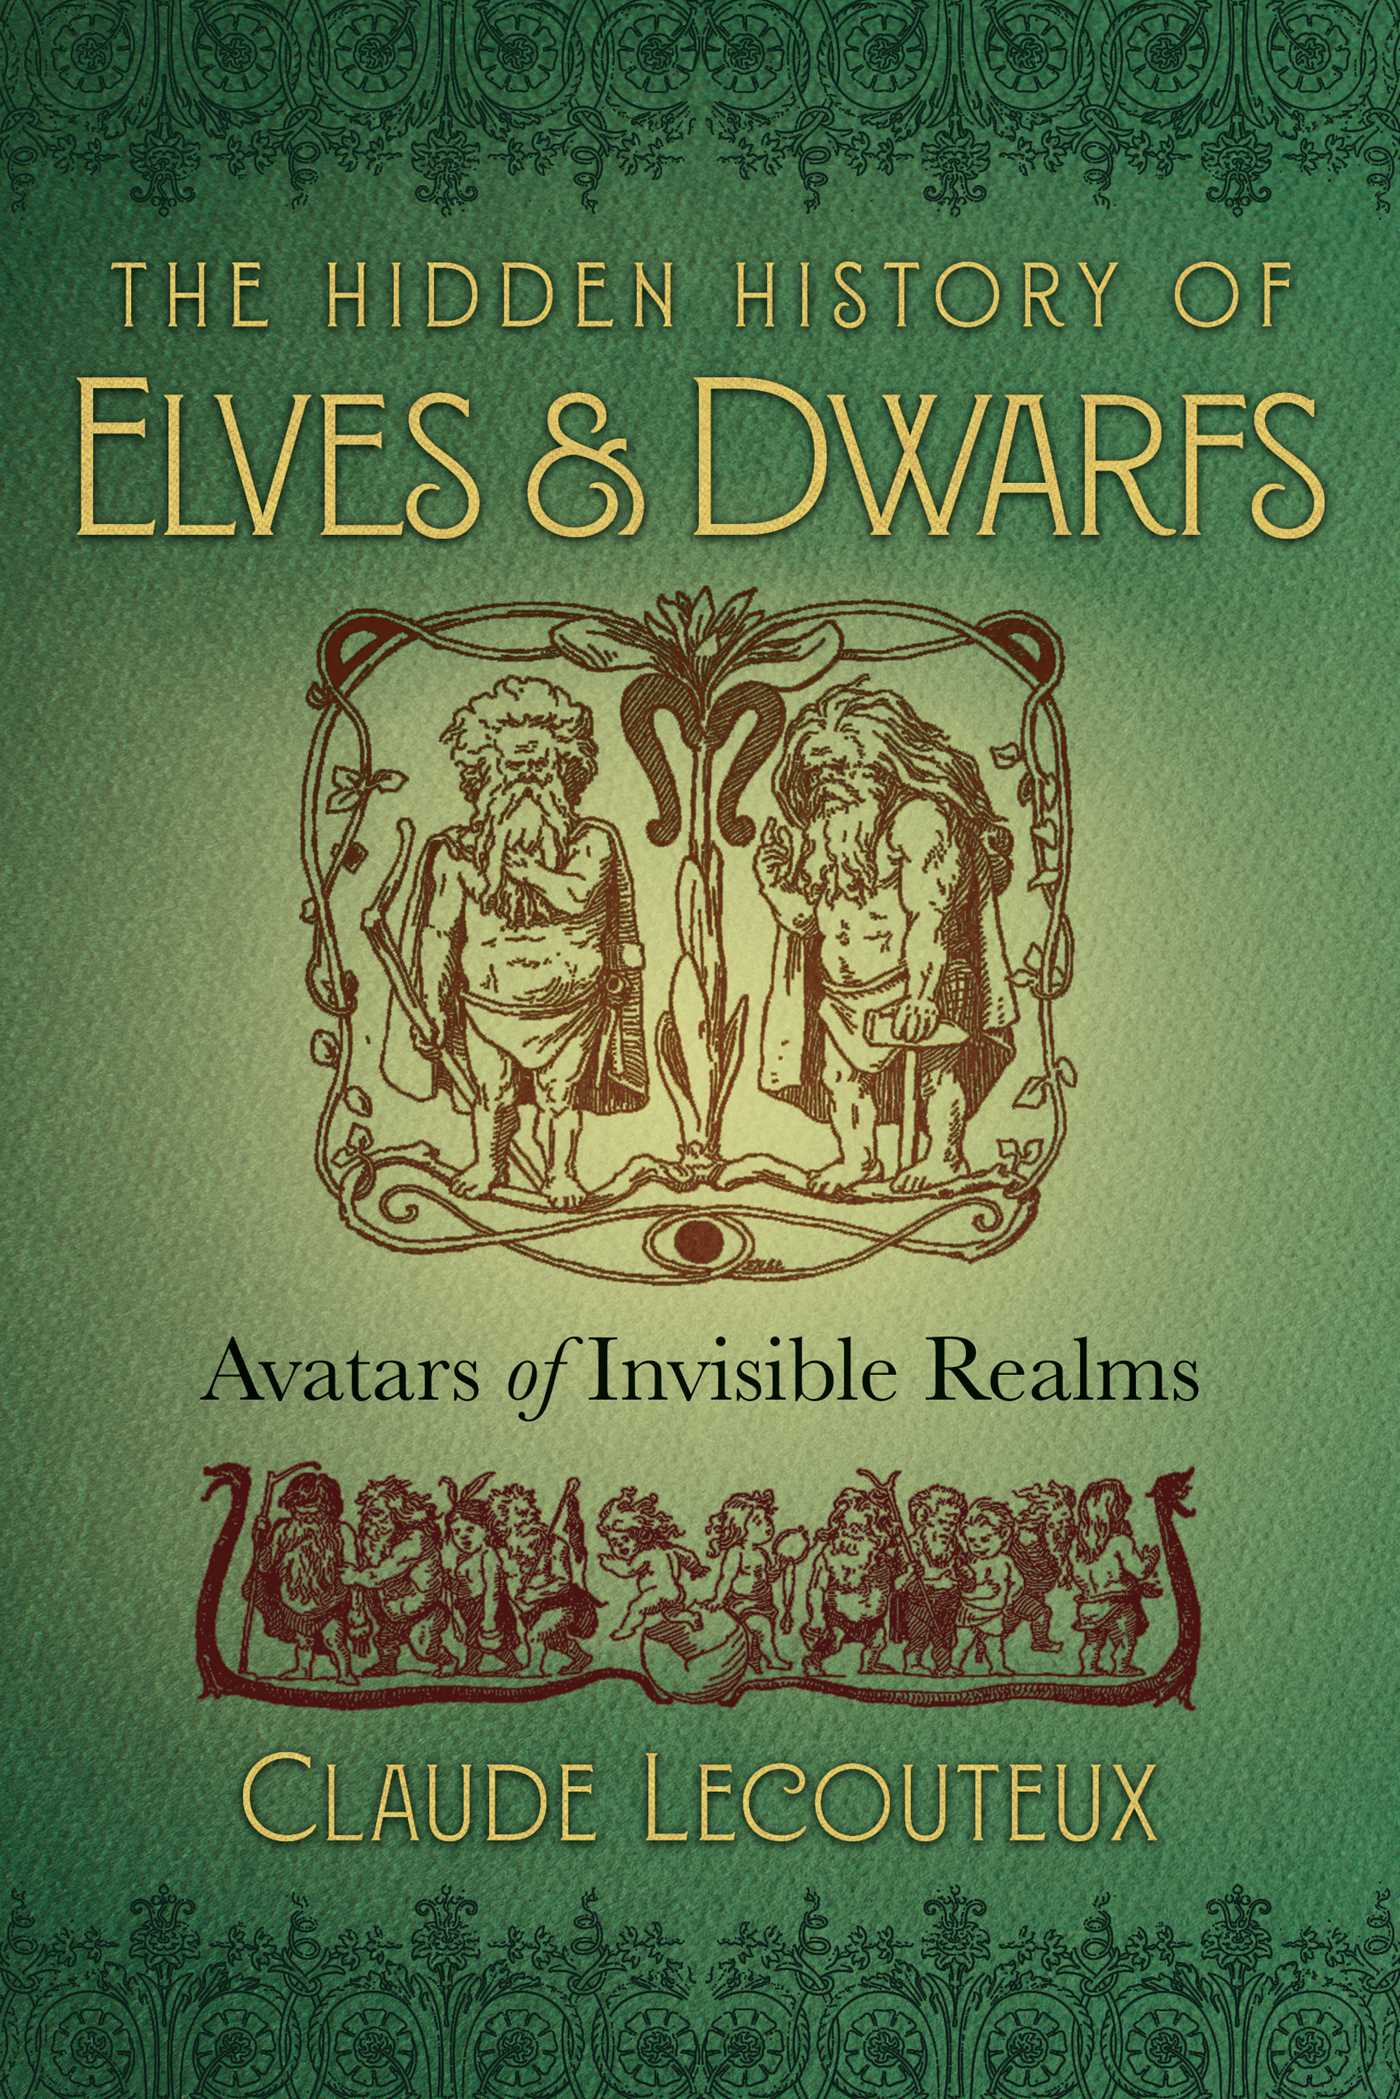 The hidden history of elves and dwarfs 9781620557150 hr